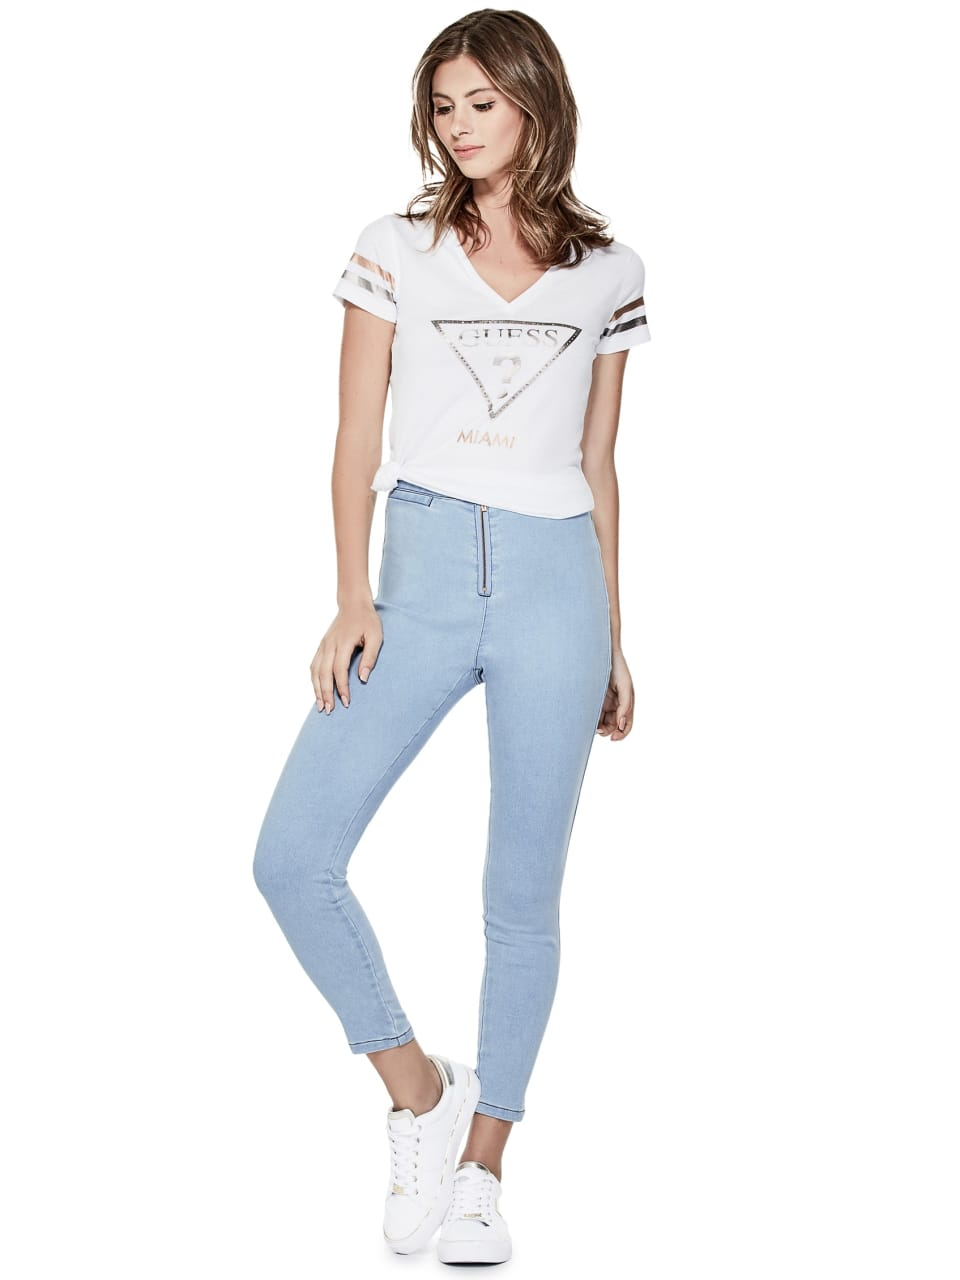 GUESS-Factory-Women-039-s-Miami-City-V-Neck-Varsity-Short-Sleeve-Tee thumbnail 11